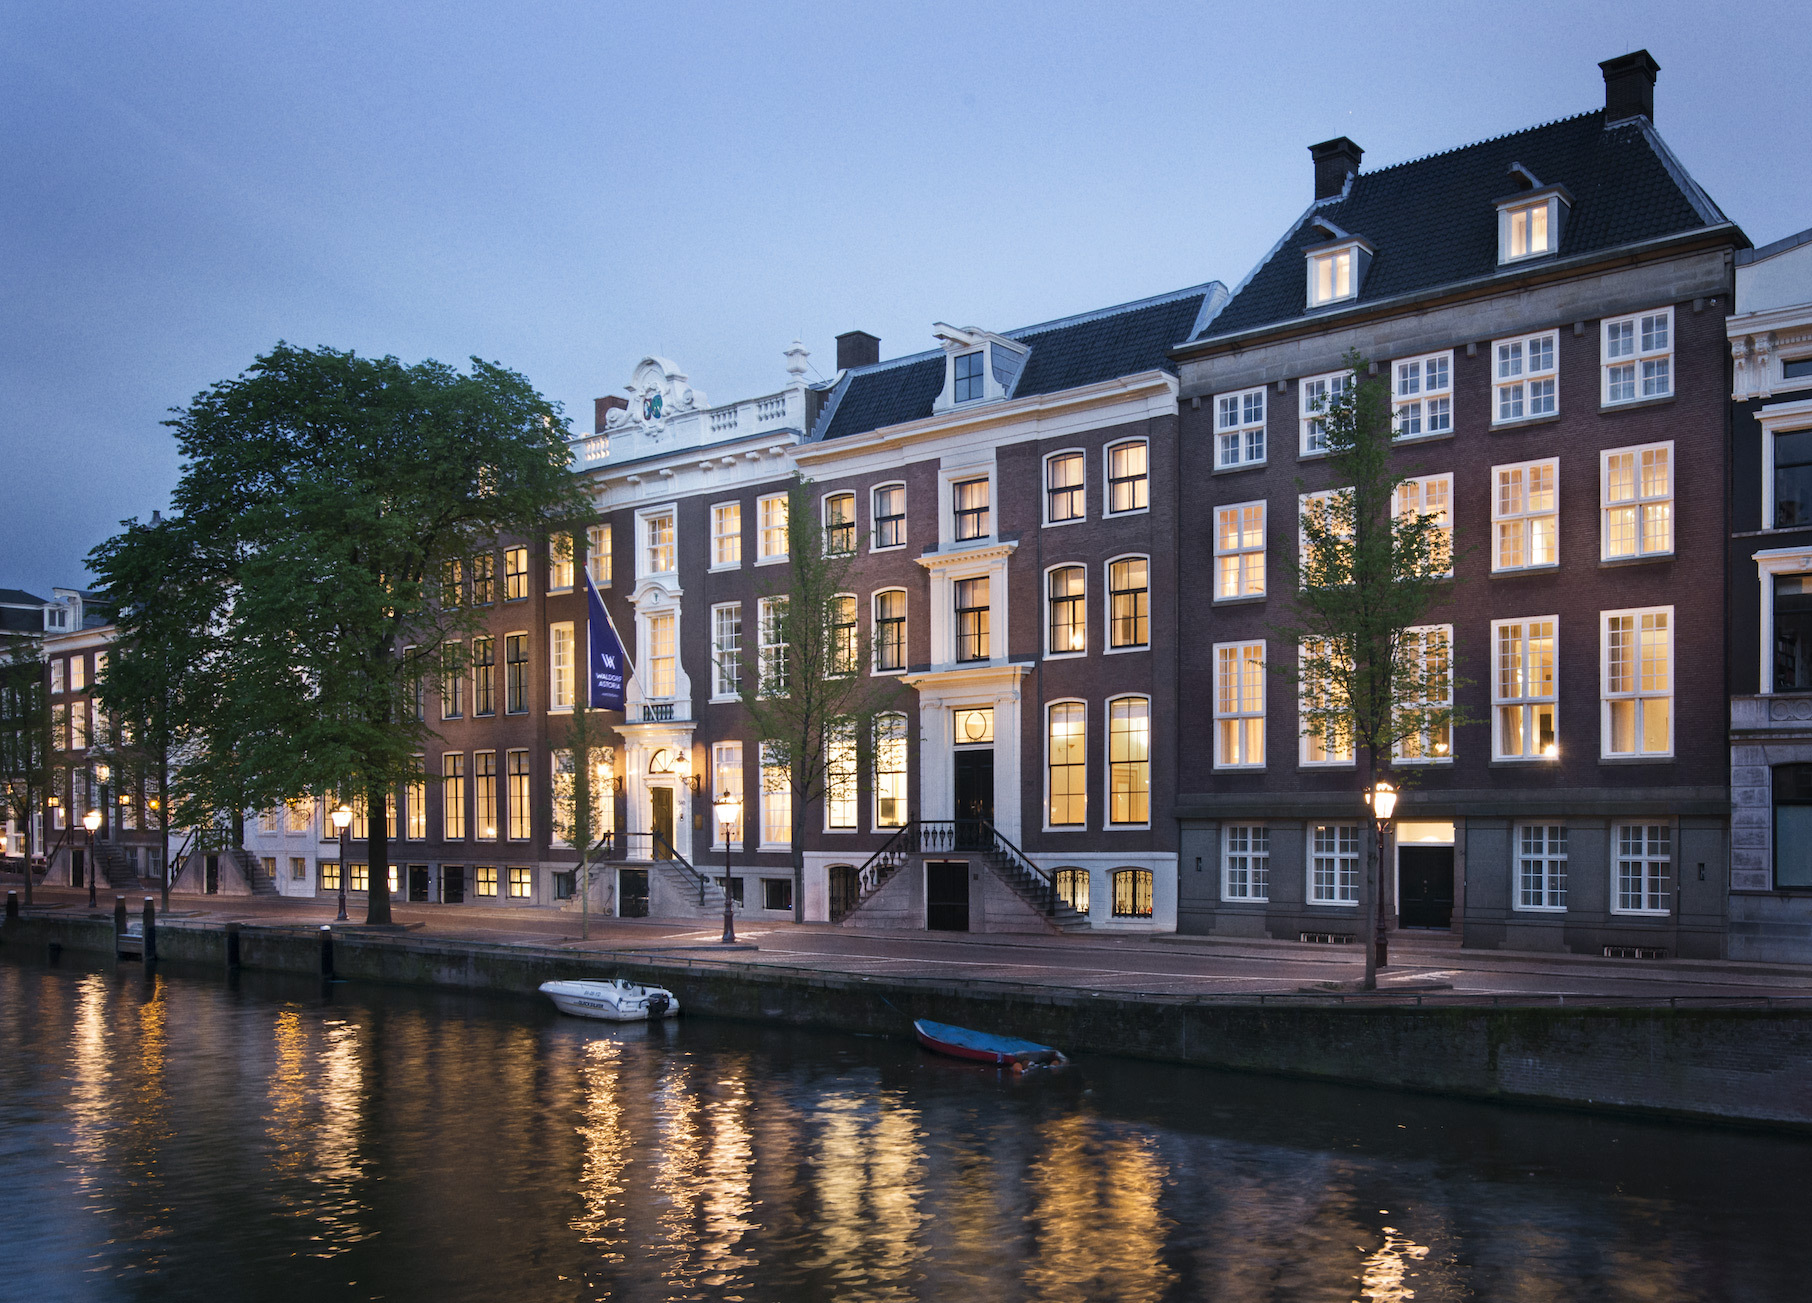 Waldorf Astoria Hotels & Resorts announces the opening of Waldorf Astoria Amsterdam, an elegant 93-room luxury canalside hotel comprised of six historic 17th and 18th century town houses. (Photo: Business Wire)